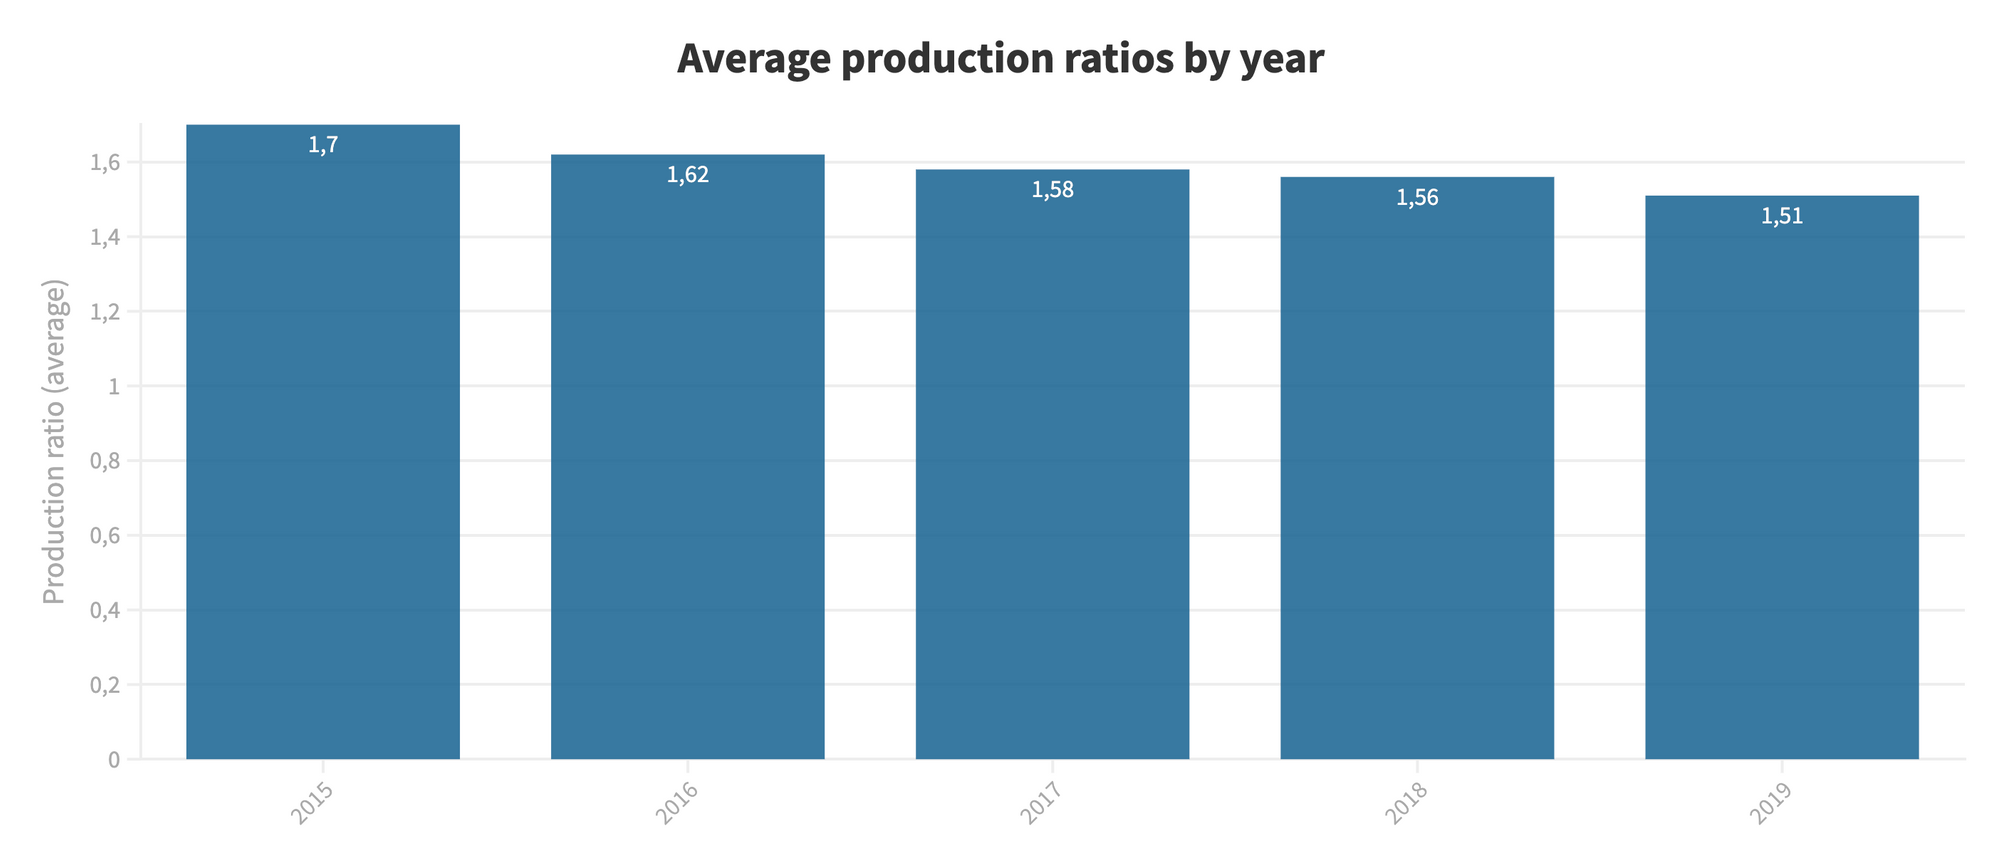 Top 10 producers boost efficiency, while small farms fall behind